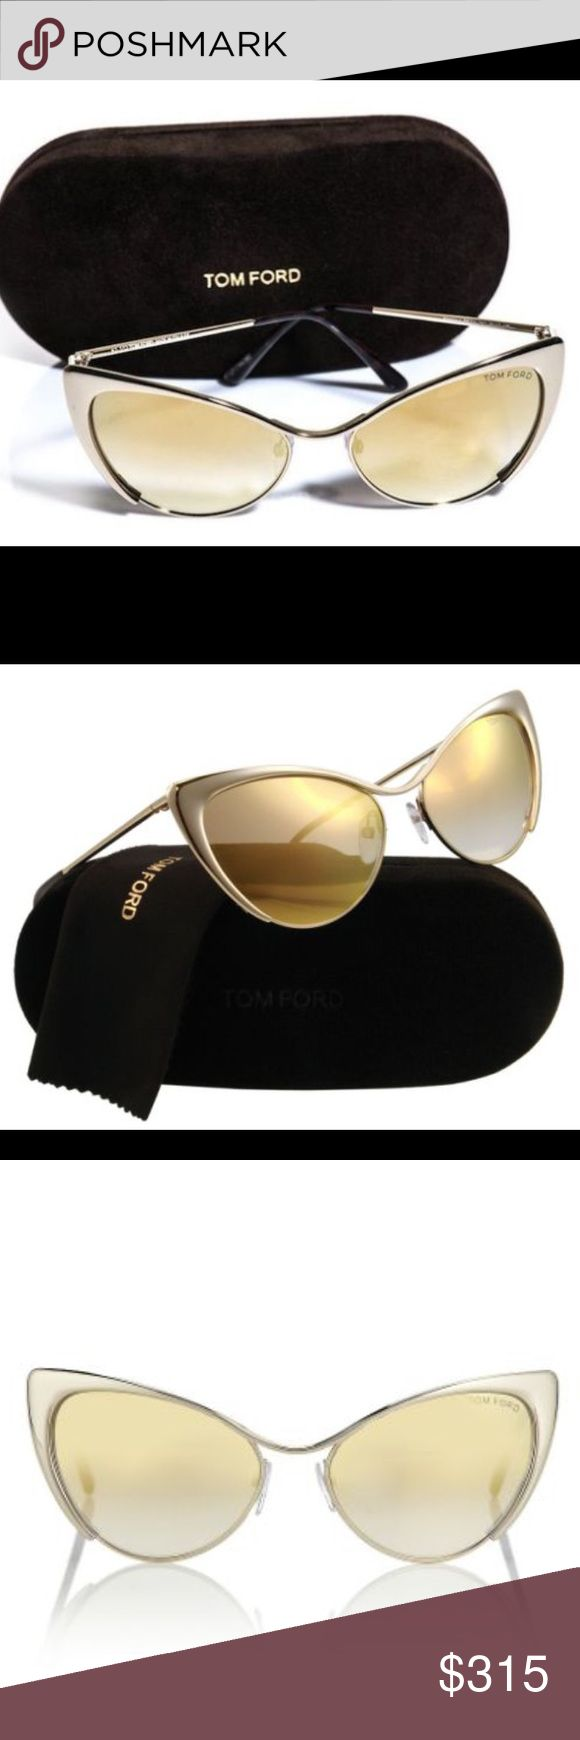 Tom Ford Cat eye sunnies 🔥1 hour sale🔥Gold mirror Tom Ford cat eye sunnies ! As seen on celebs such as kourtney kardash and Miley Cyrus !! These glasses are stunning 😍 super cool and trendy have only been worn 1 time. They're absolutely flawless and have no signs of wear. Comes with original Tom ford case, but no dust cloth! ⭐️Offers welcomed Tom Ford Accessories Sunglasses